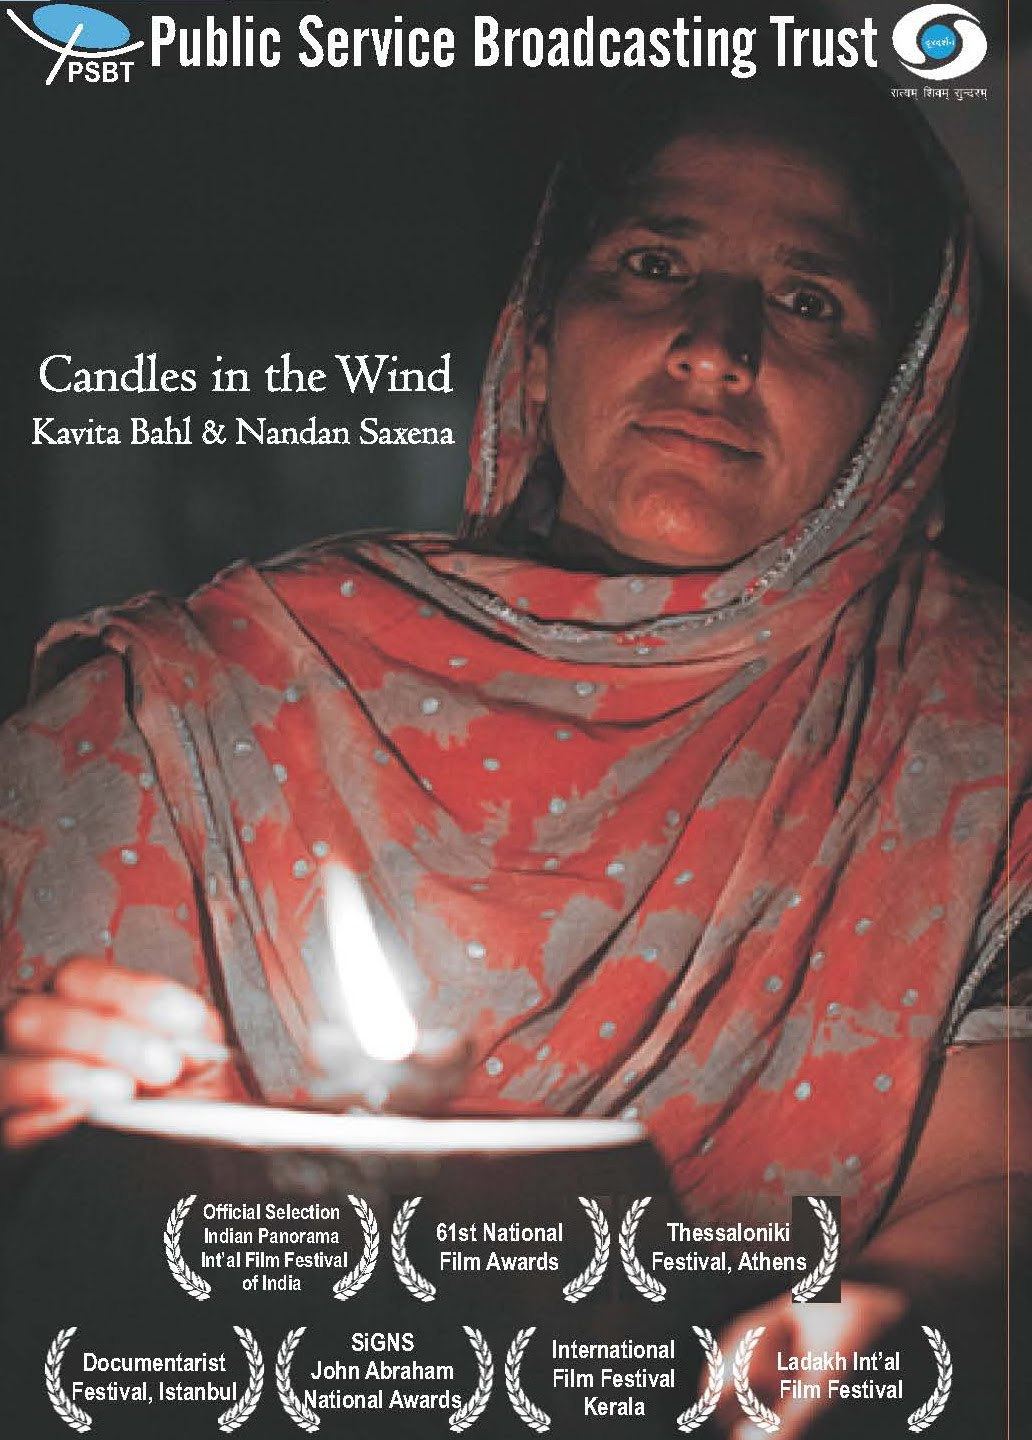 Candles in the wind